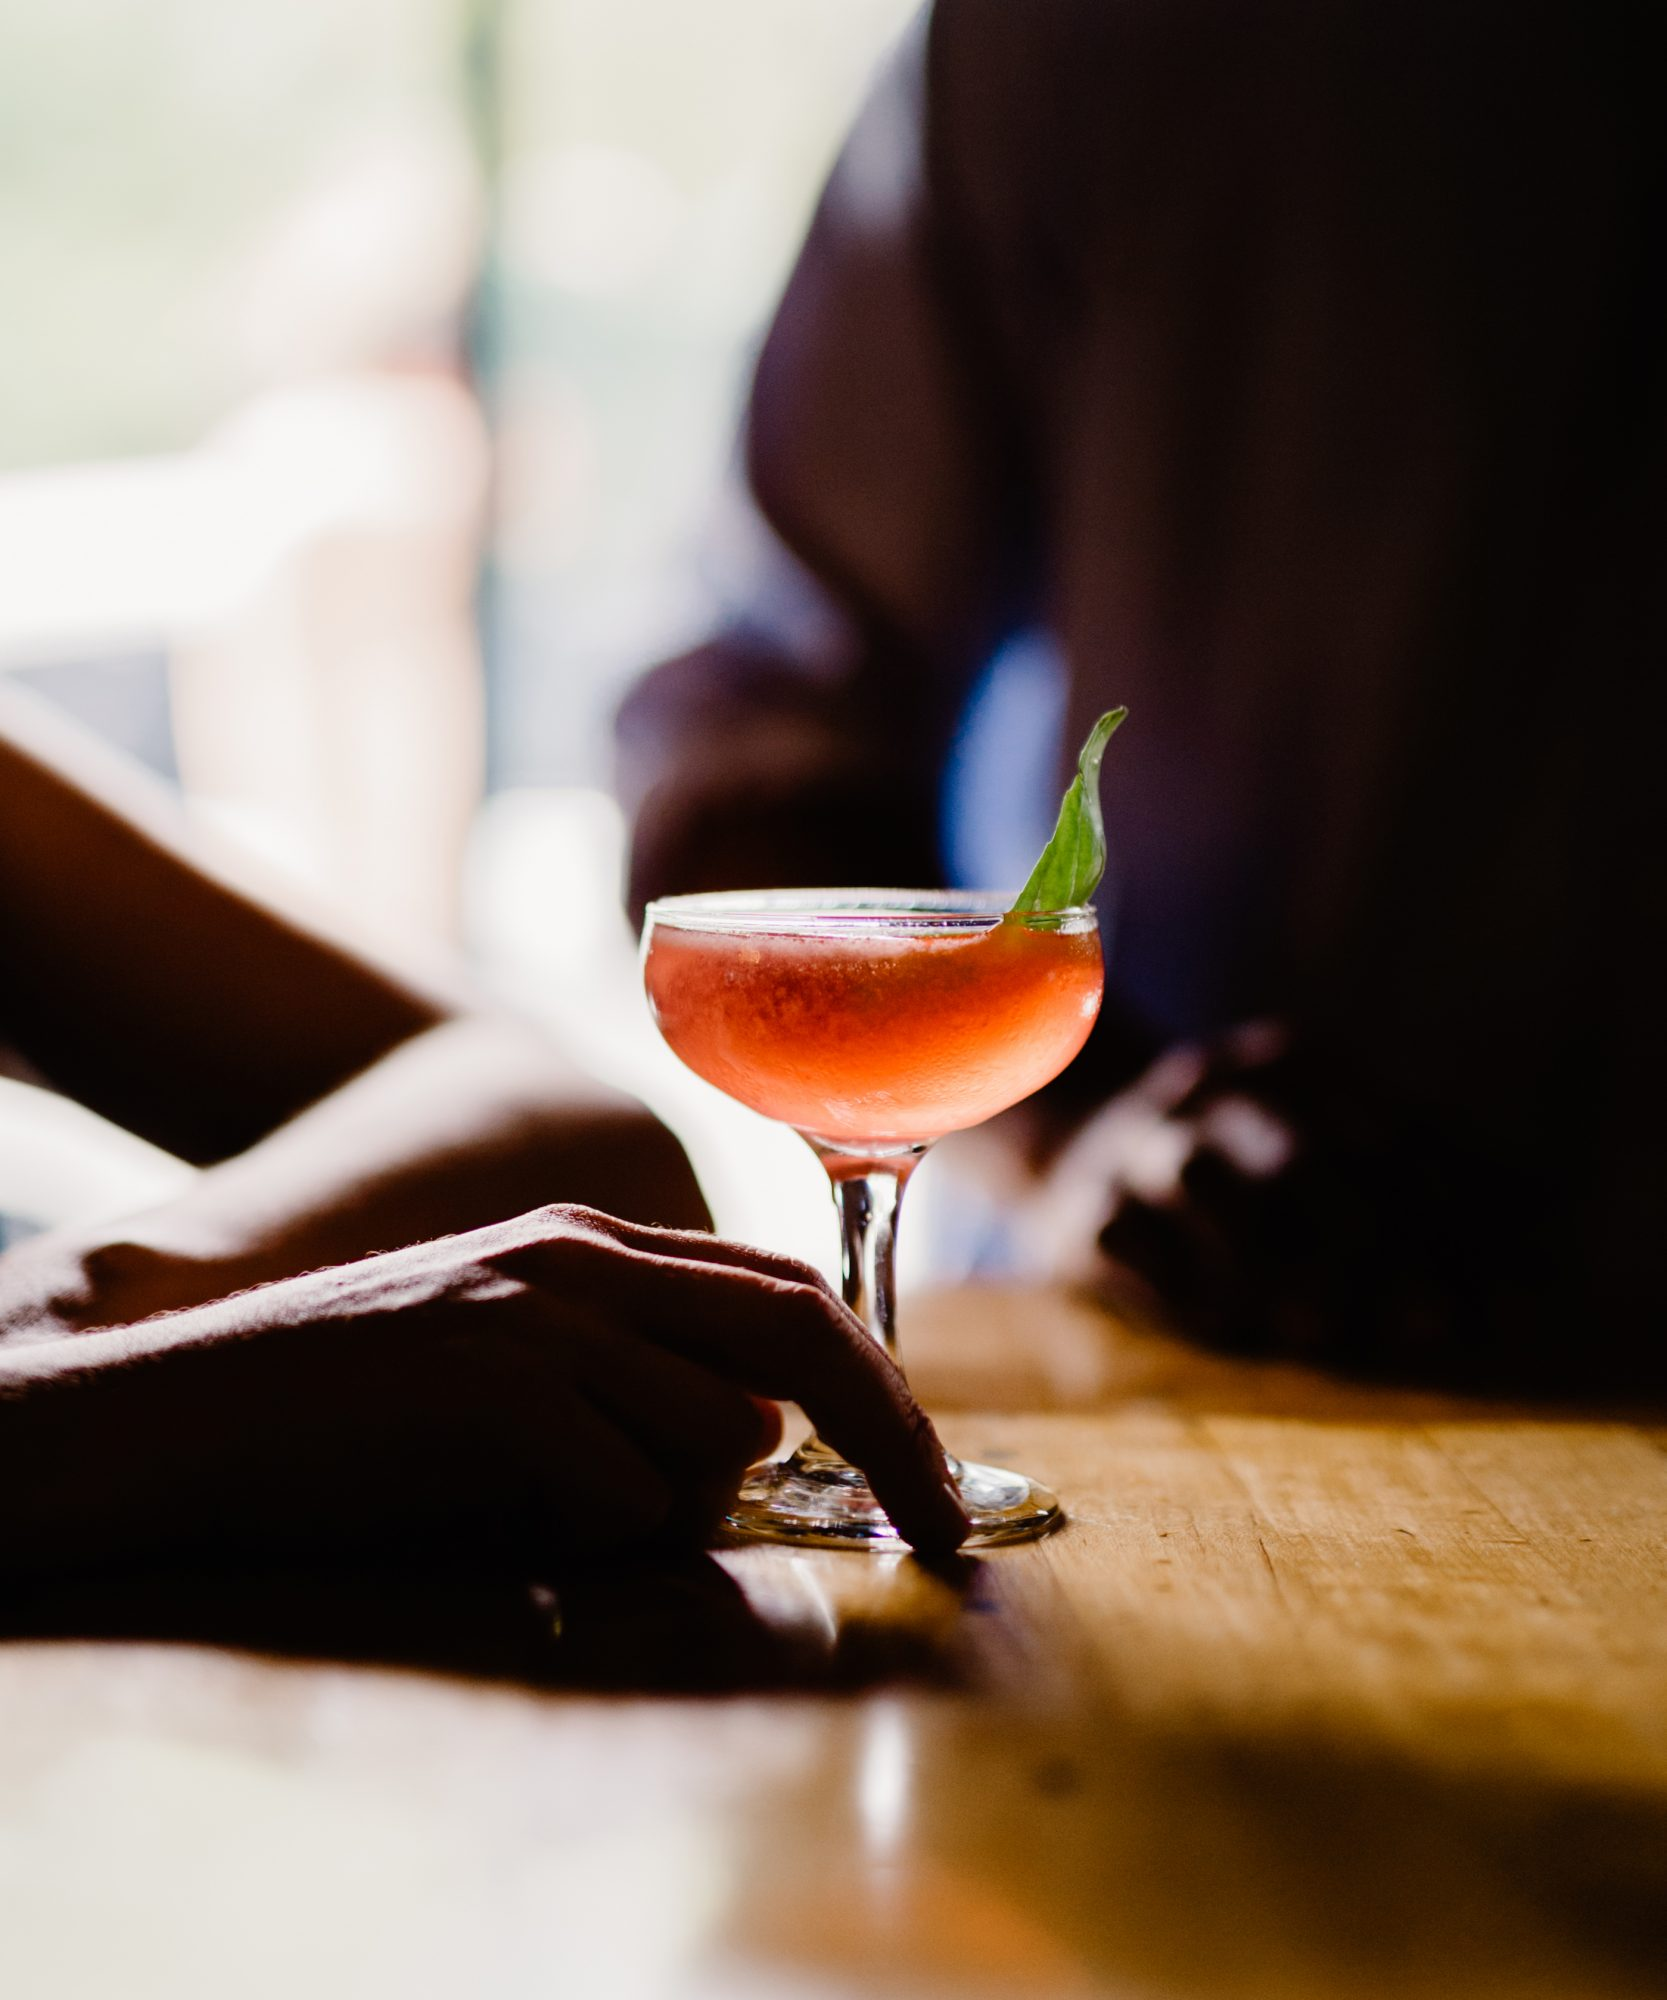 Hump Day: What to Do If Your Partner Has an Alcohol Problem